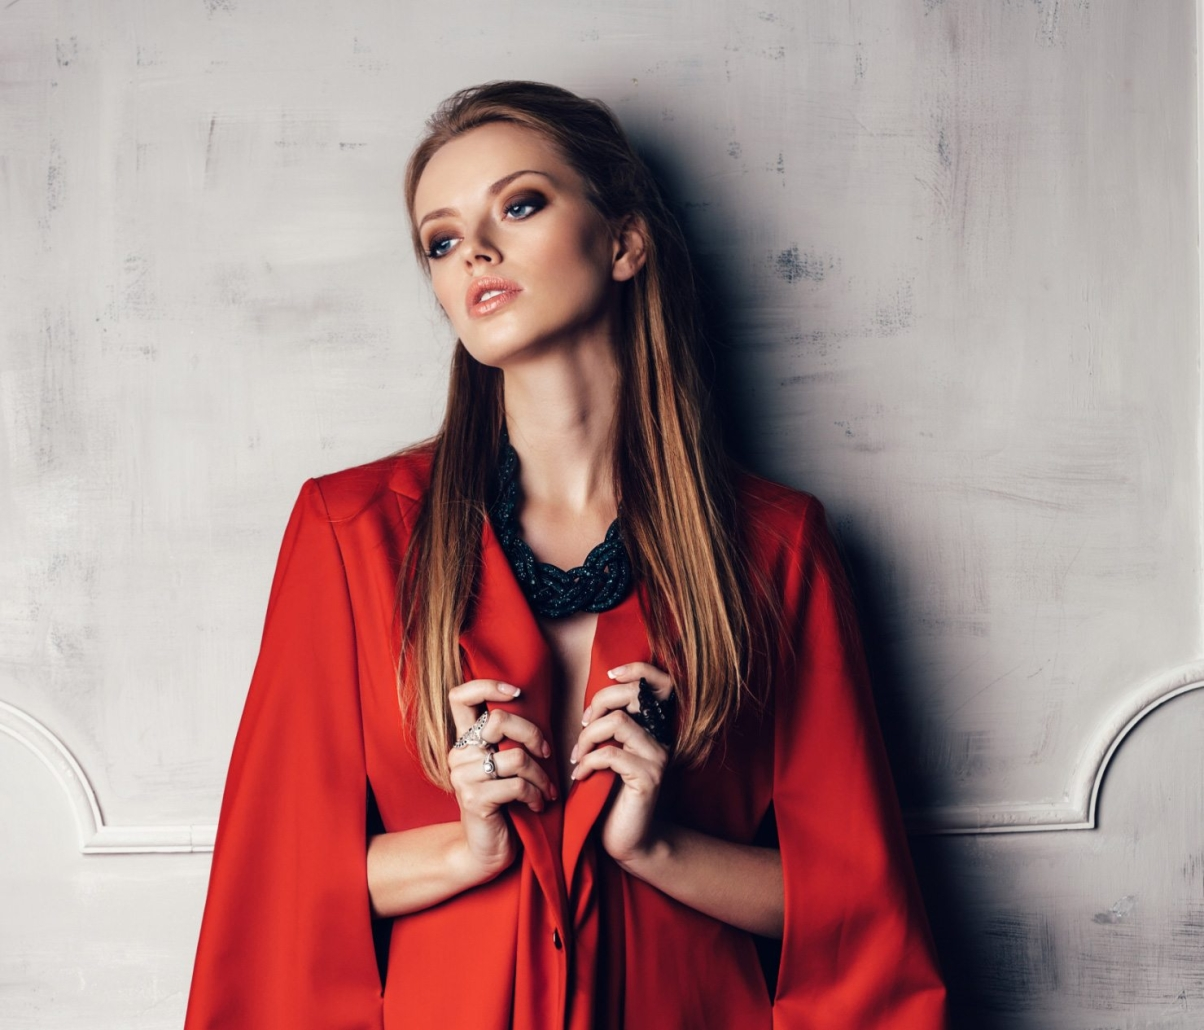 fashion-young-beautiful-woman-in-red-coat-PKM7M7Z